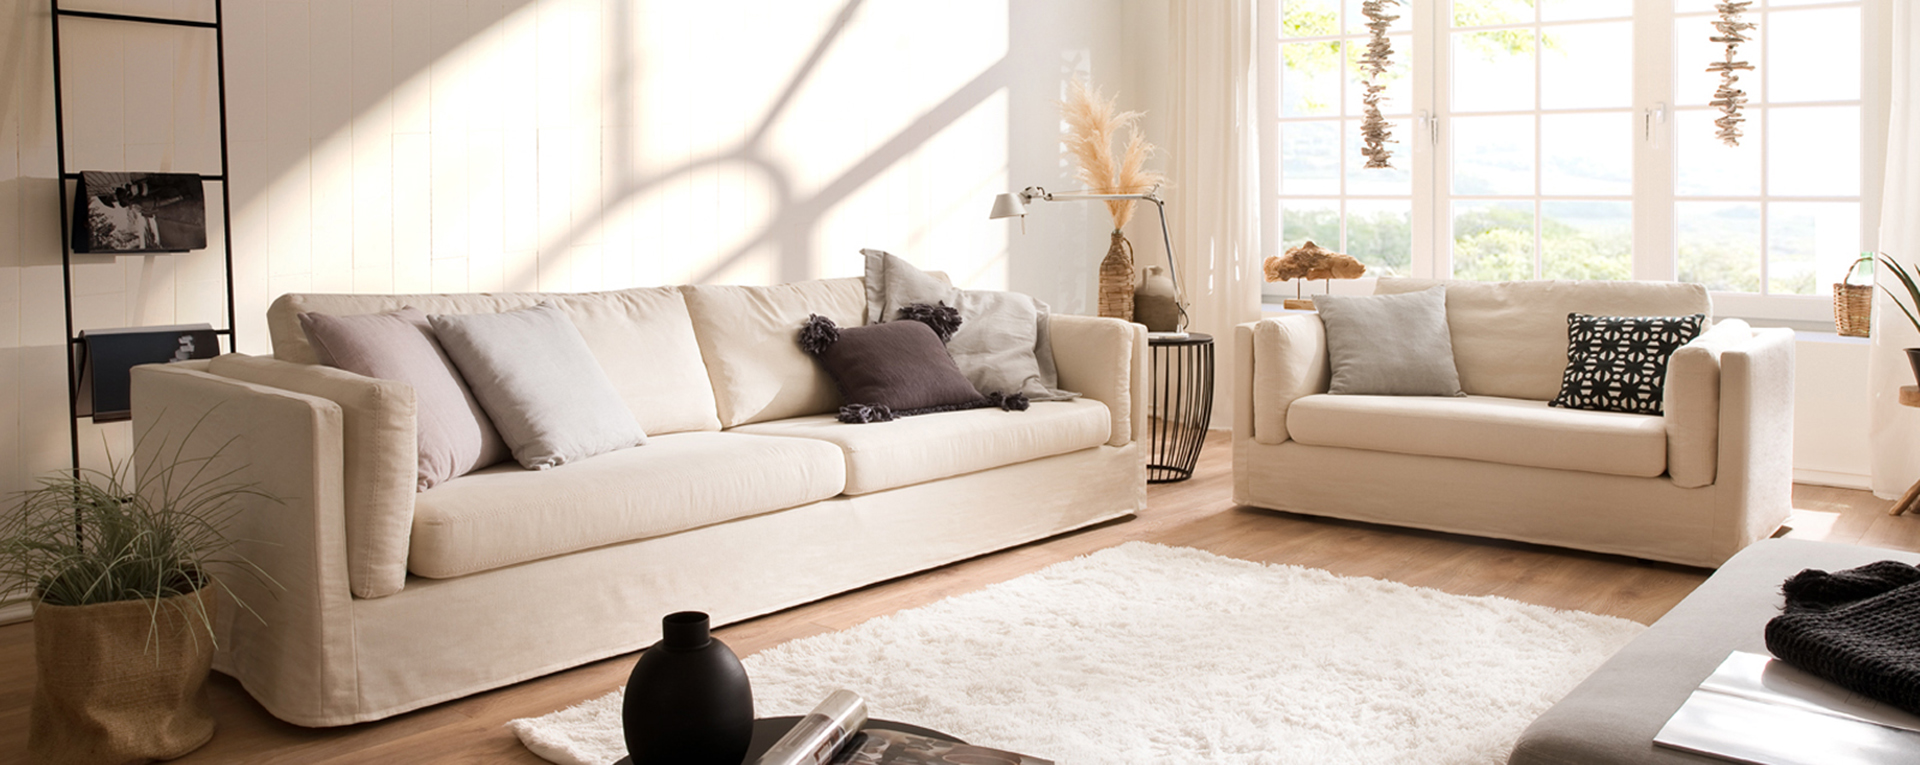 Long_Beach_Maxi-Sofa_Slider_neu